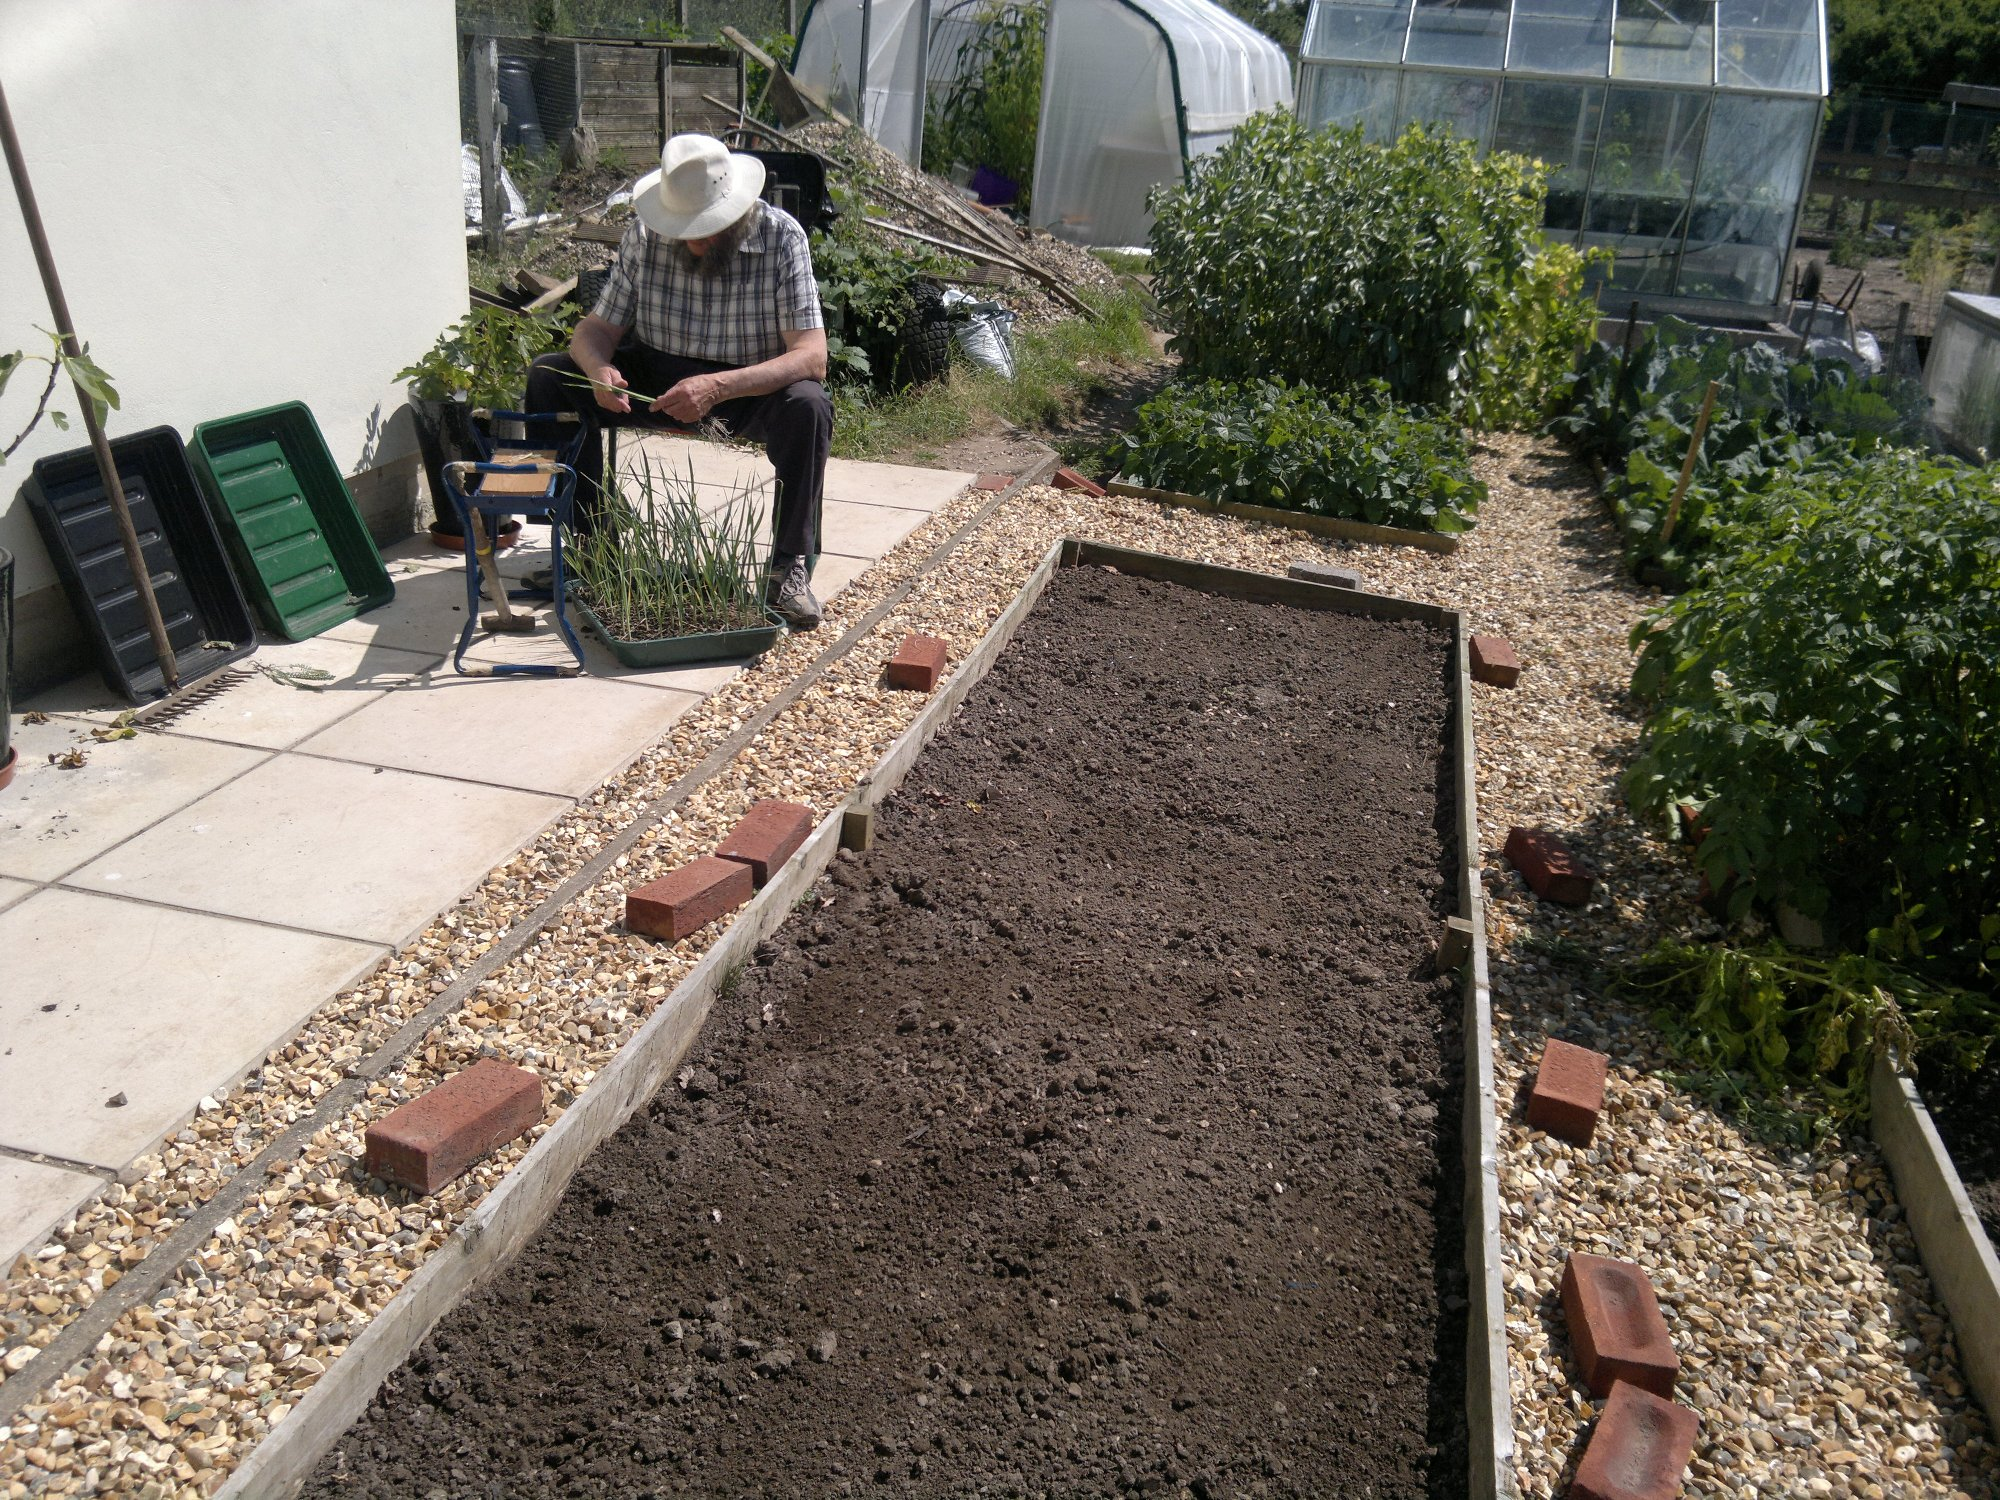 Dad separating the leek plants; prepared bed in the foreground